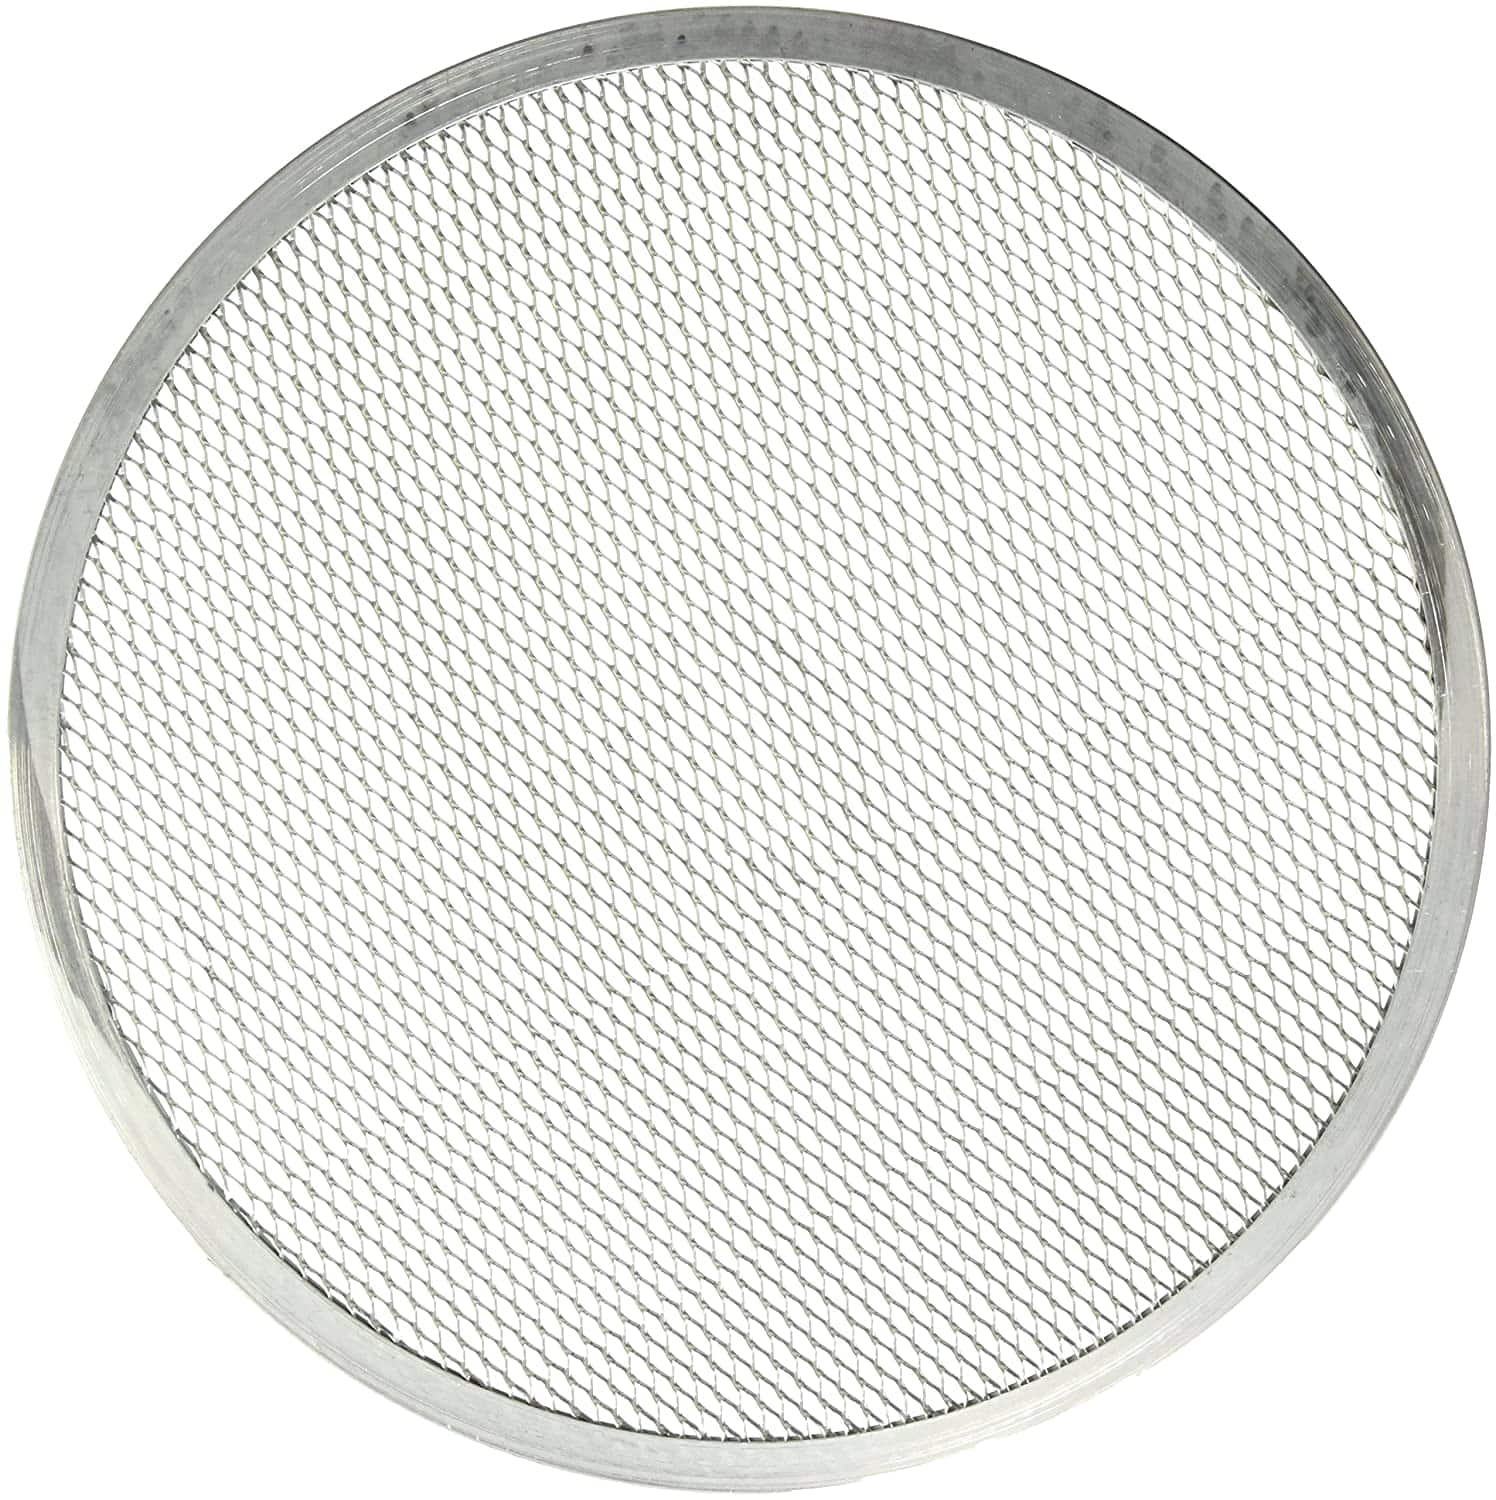 "10"" American Metalcraft Aluminum Pizza Screen $2.19 + Free Shipping w/ Prime or $25+"